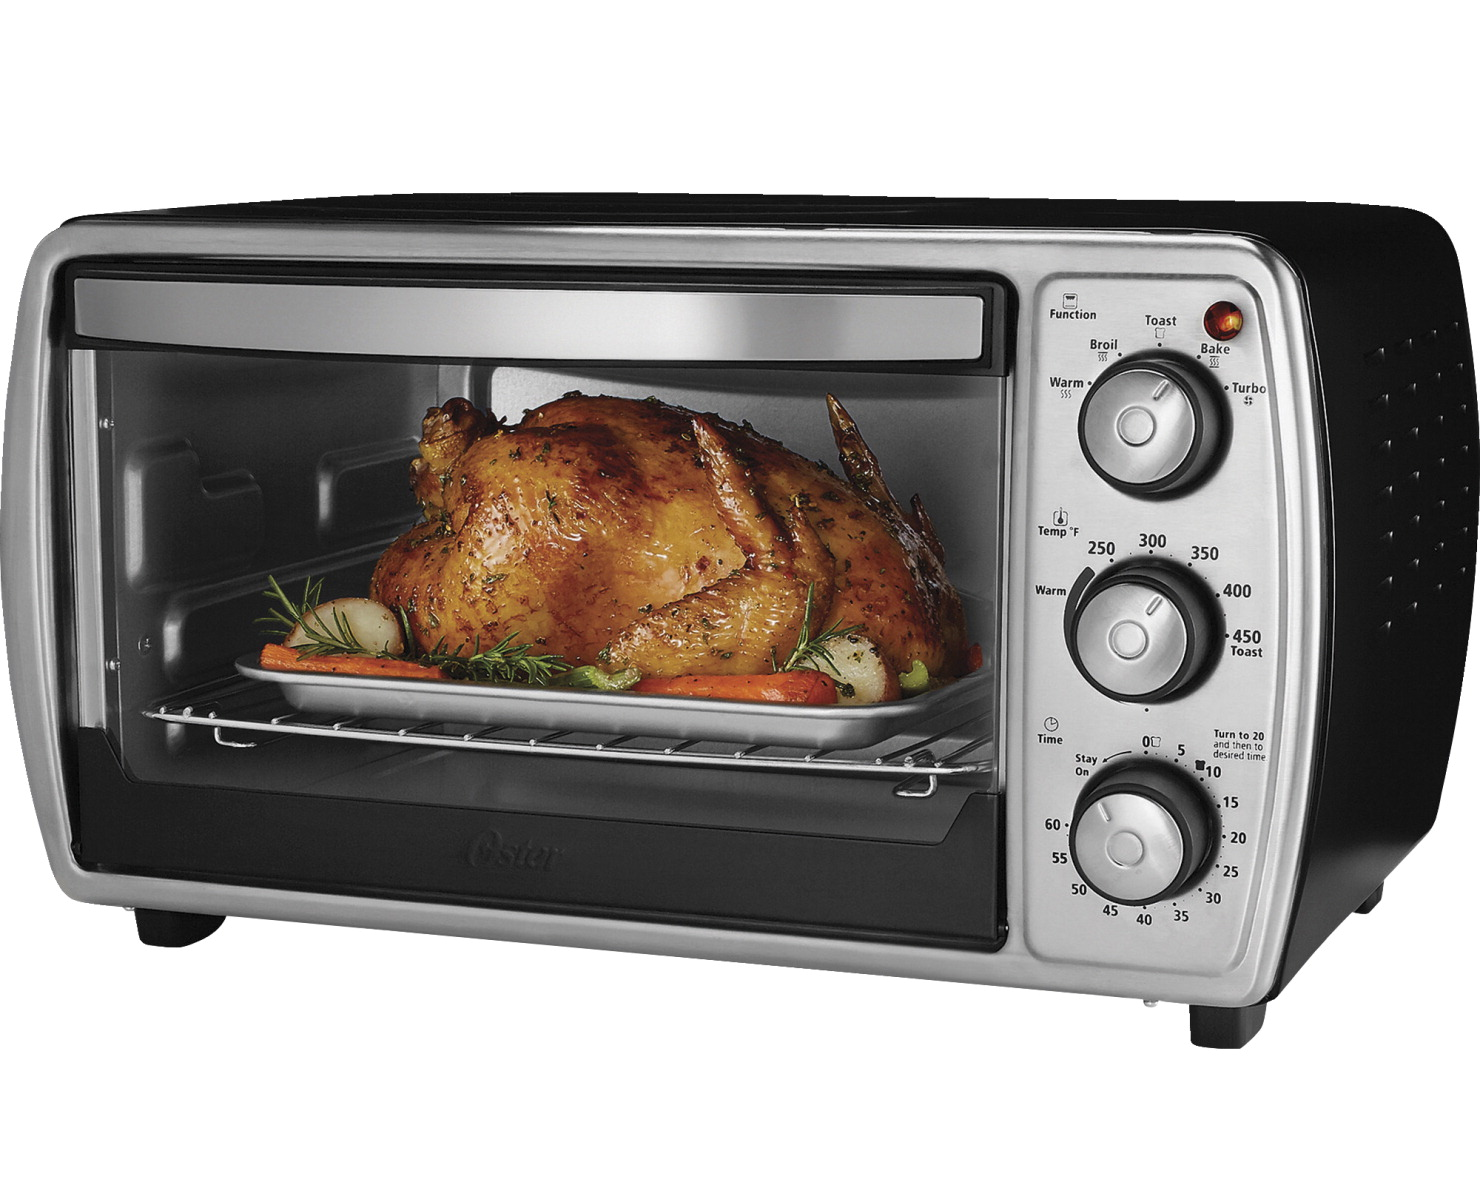 How To Toast Bread In Microwave Convection Oven